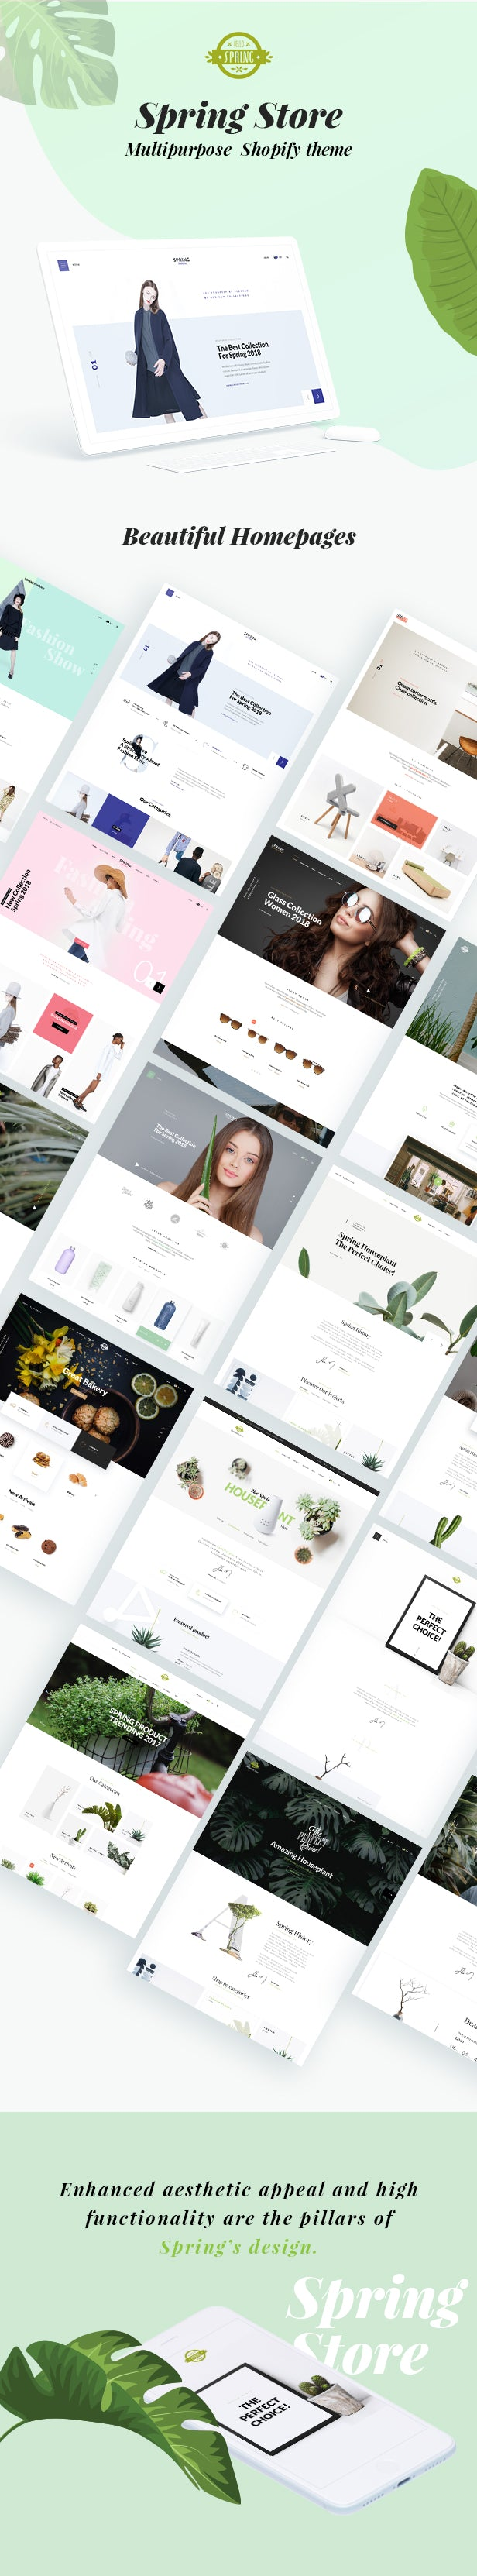 Shopify theme spring features